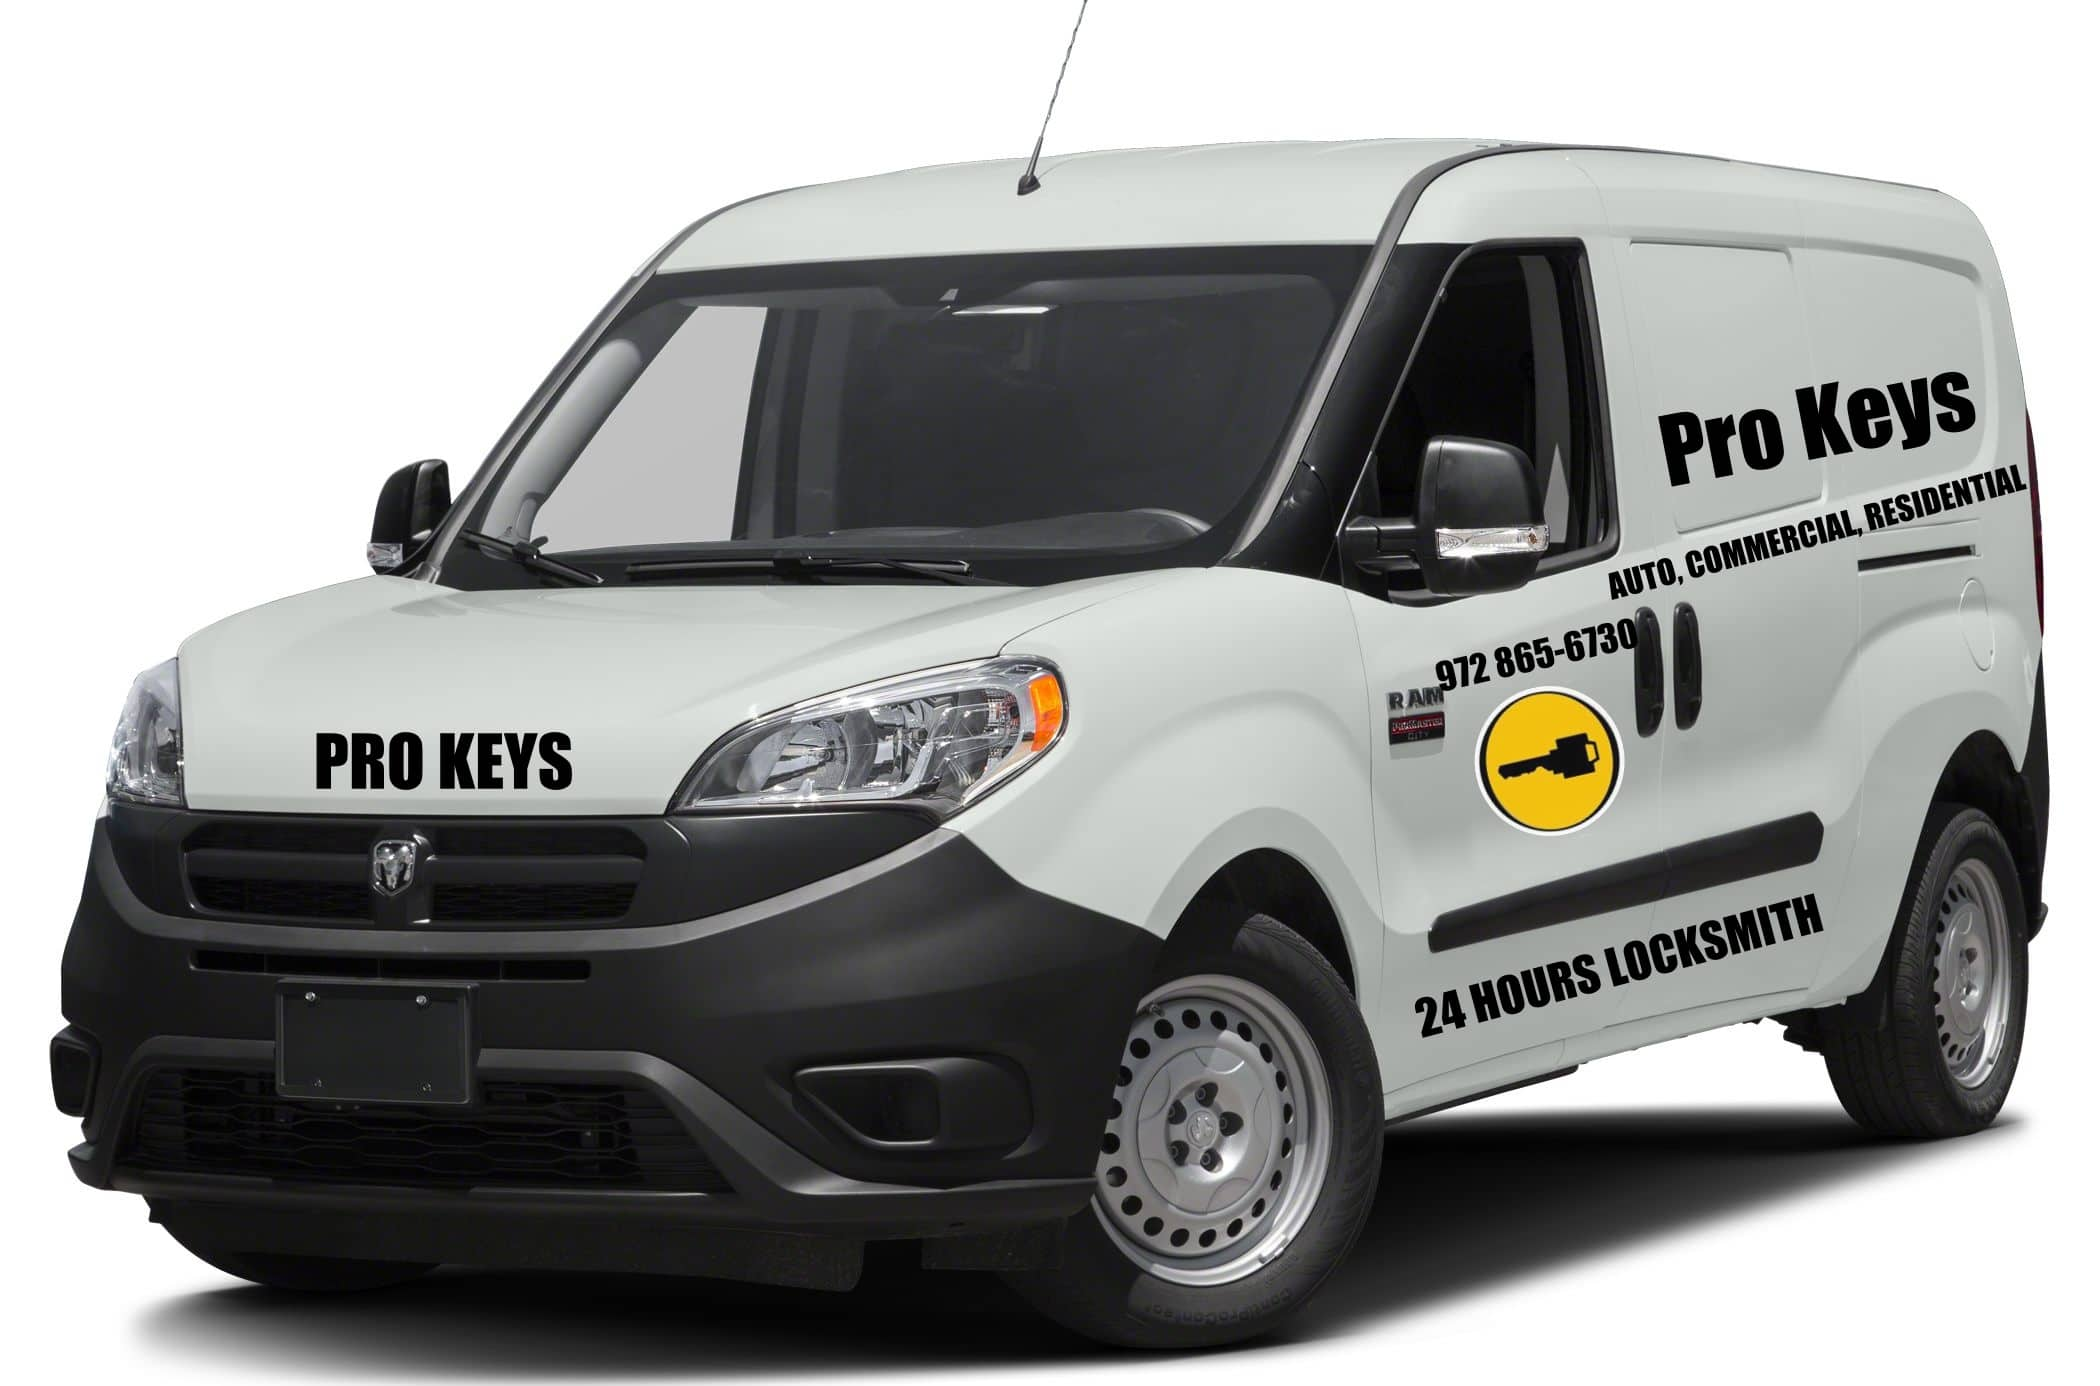 South Houston Locksmith Service locksmith van